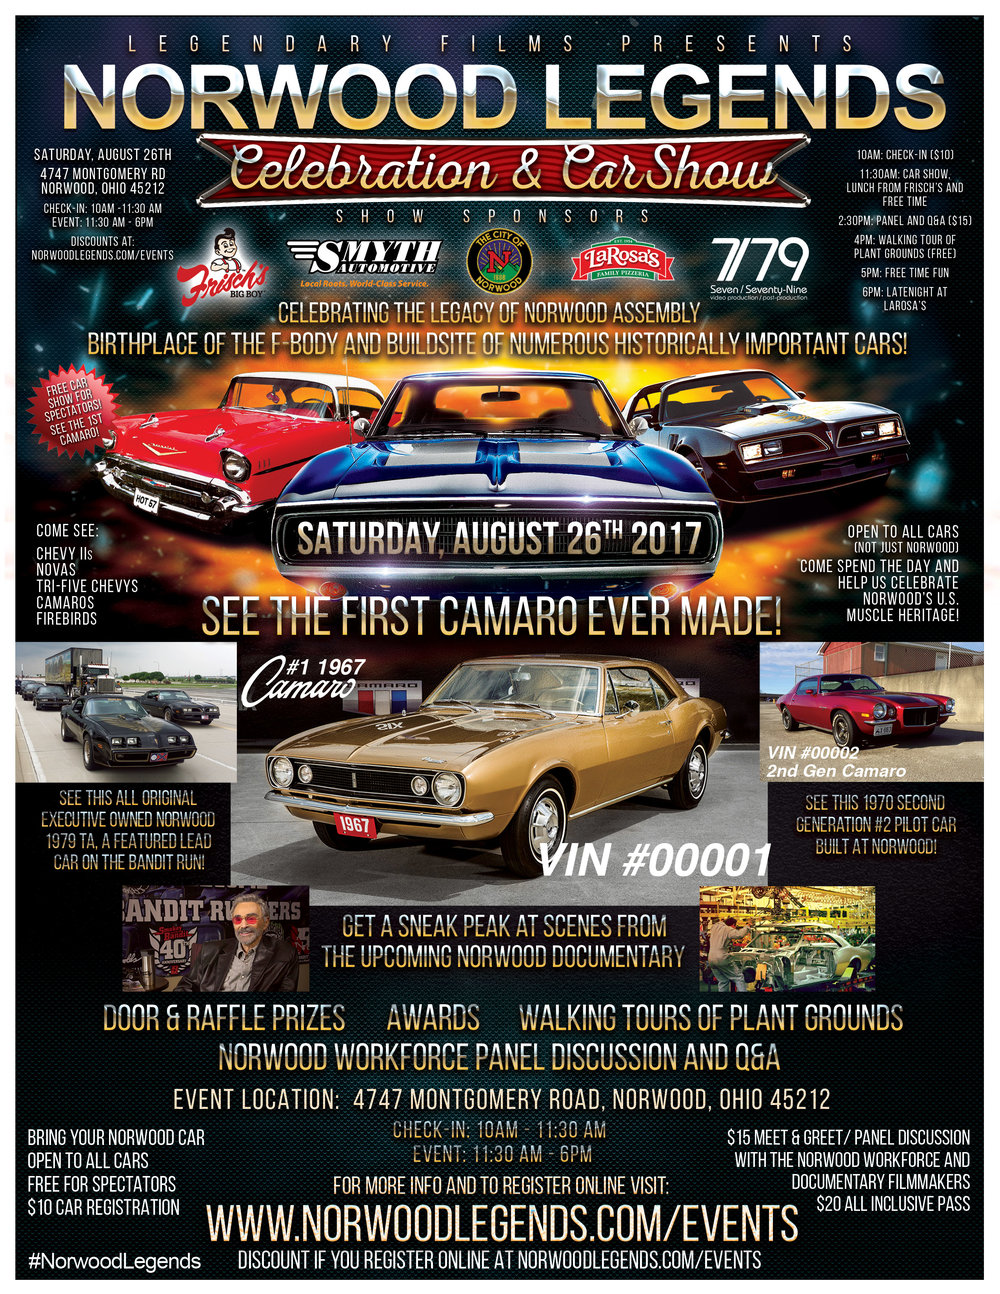 Come see the first Camaro ever produced on August 26th, 2017 in Norwood, Ohio where it was originally hand built in 1966.